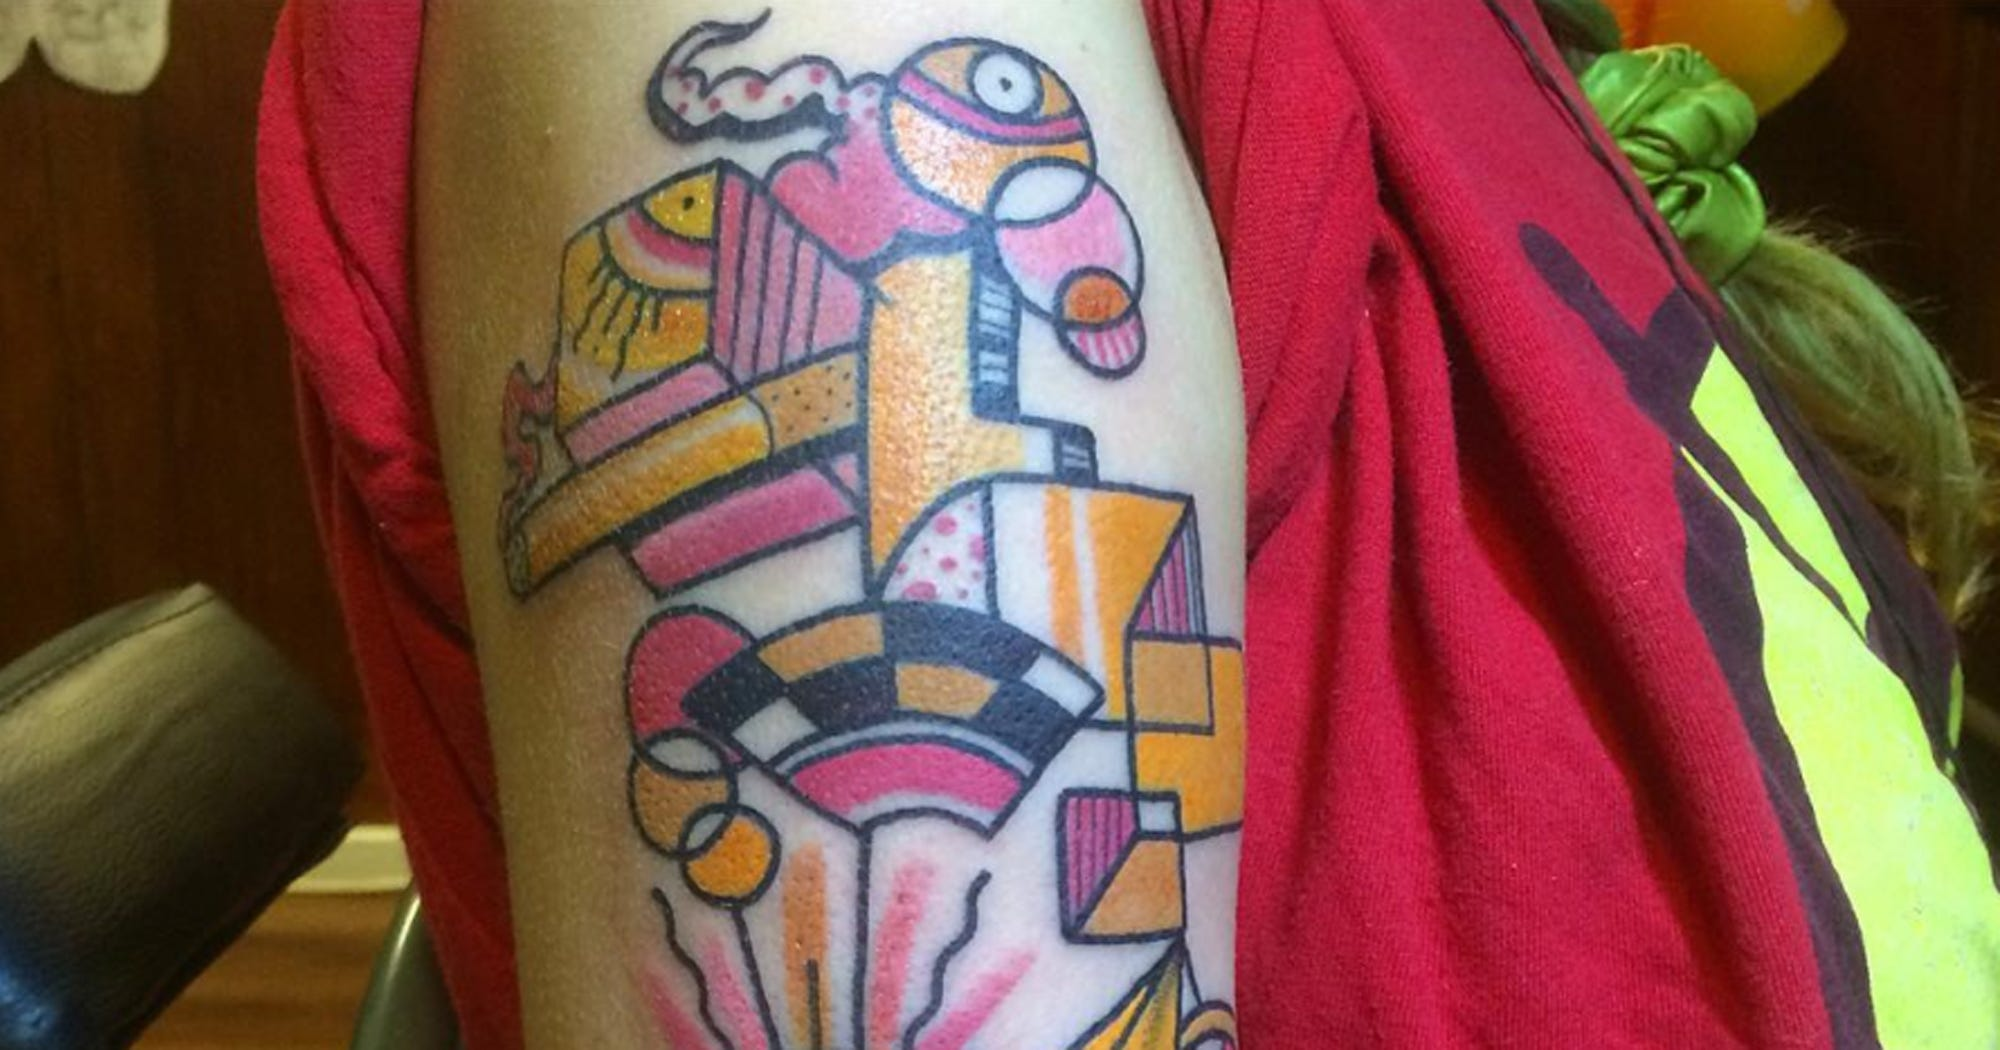 The Latest Tattoo Trend Deserves A Spot In The MoMA